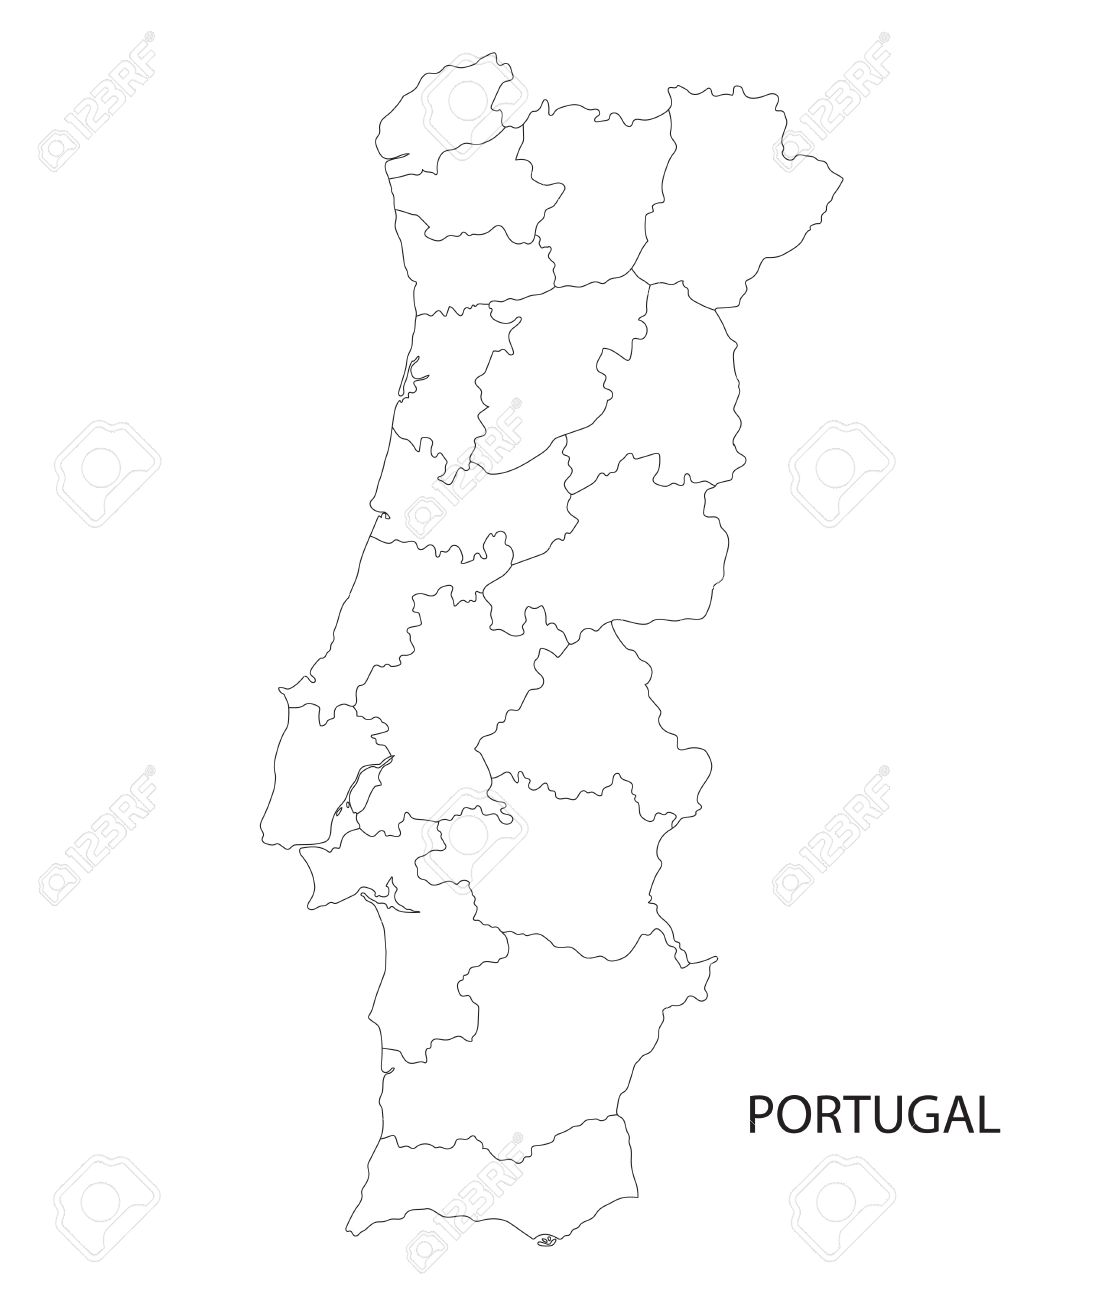 Portugal Map Outline Of Districts On Separate Layers Royalty Free - Portugal map